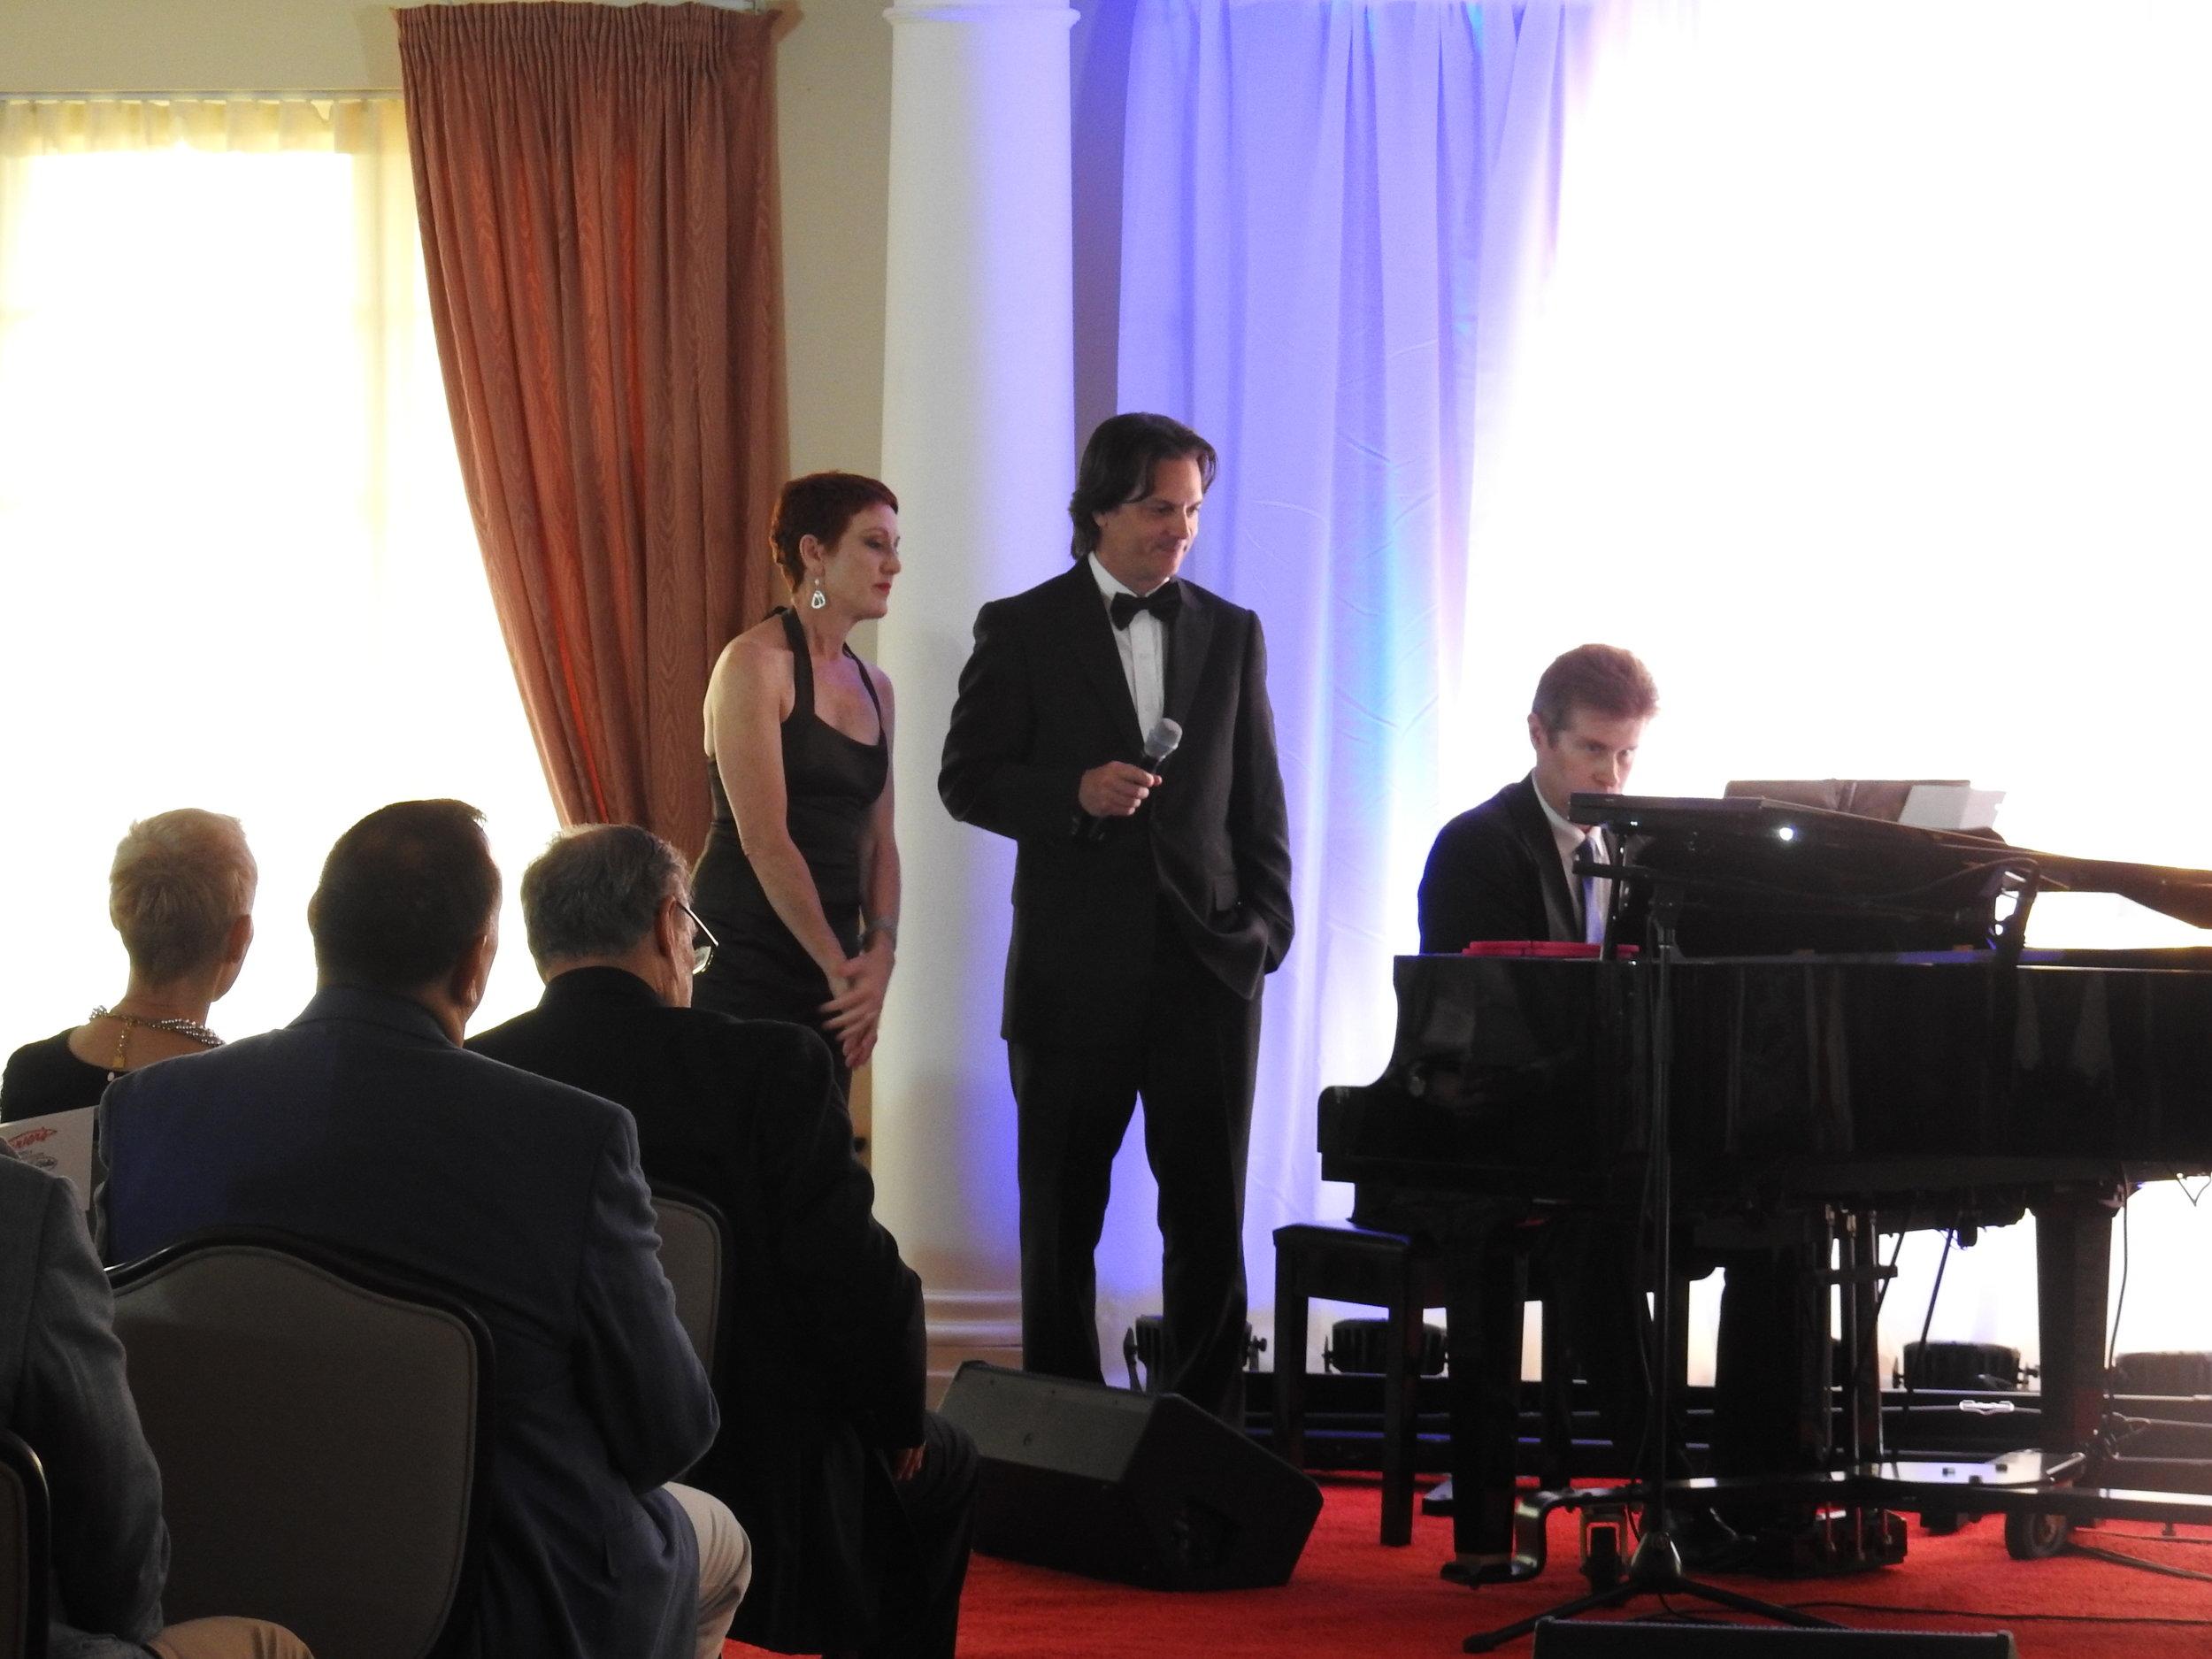 Special Cameo Soloist - Music Director Daniel Meyer and